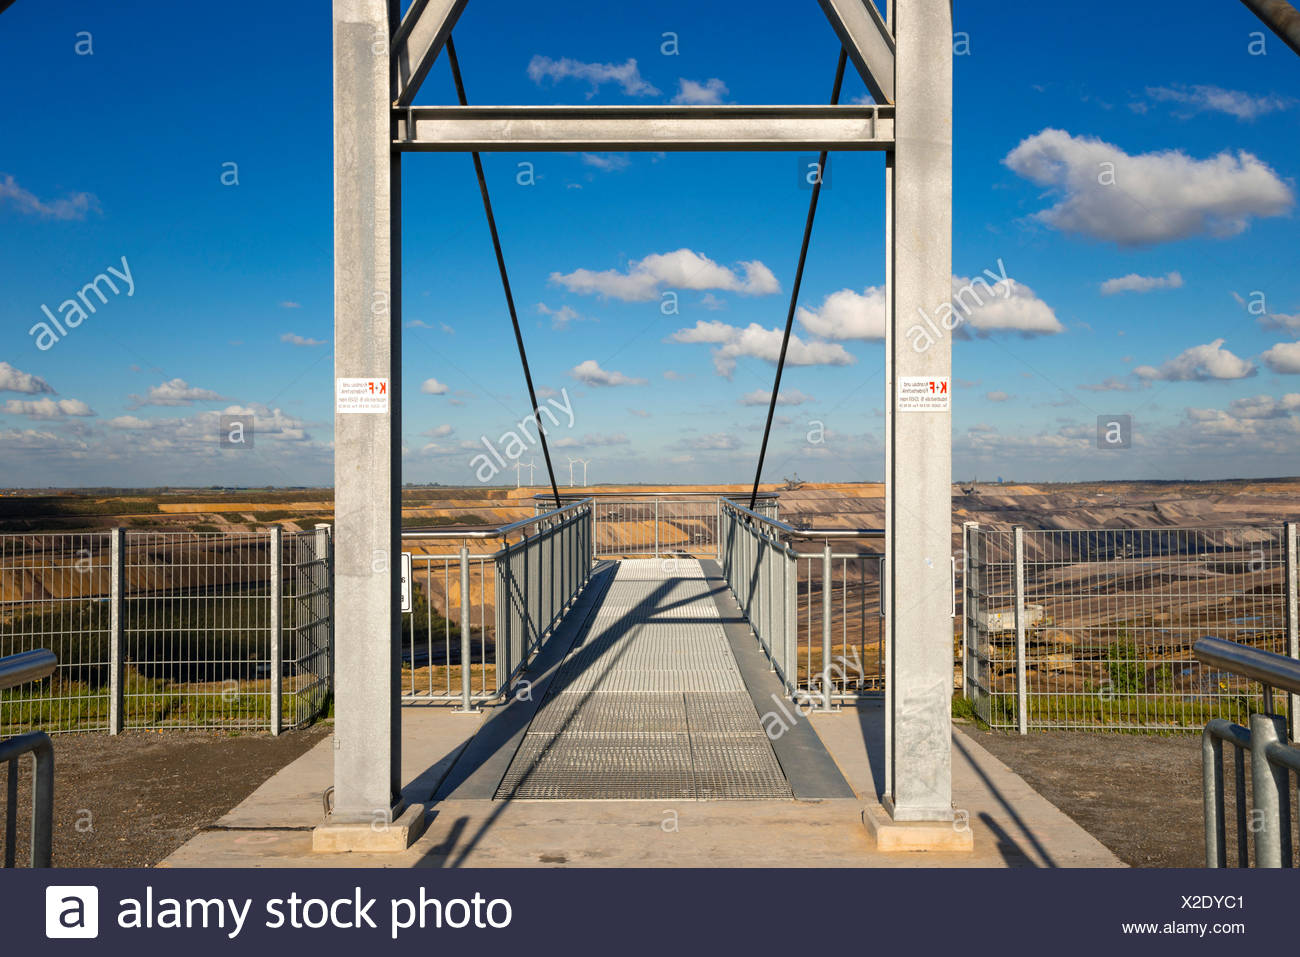 Dismantling, outside, brown coal, Germany, energy, power production, Europe, Hambach, industry, North Rhine-Westphalia, raw mater - Stock Image